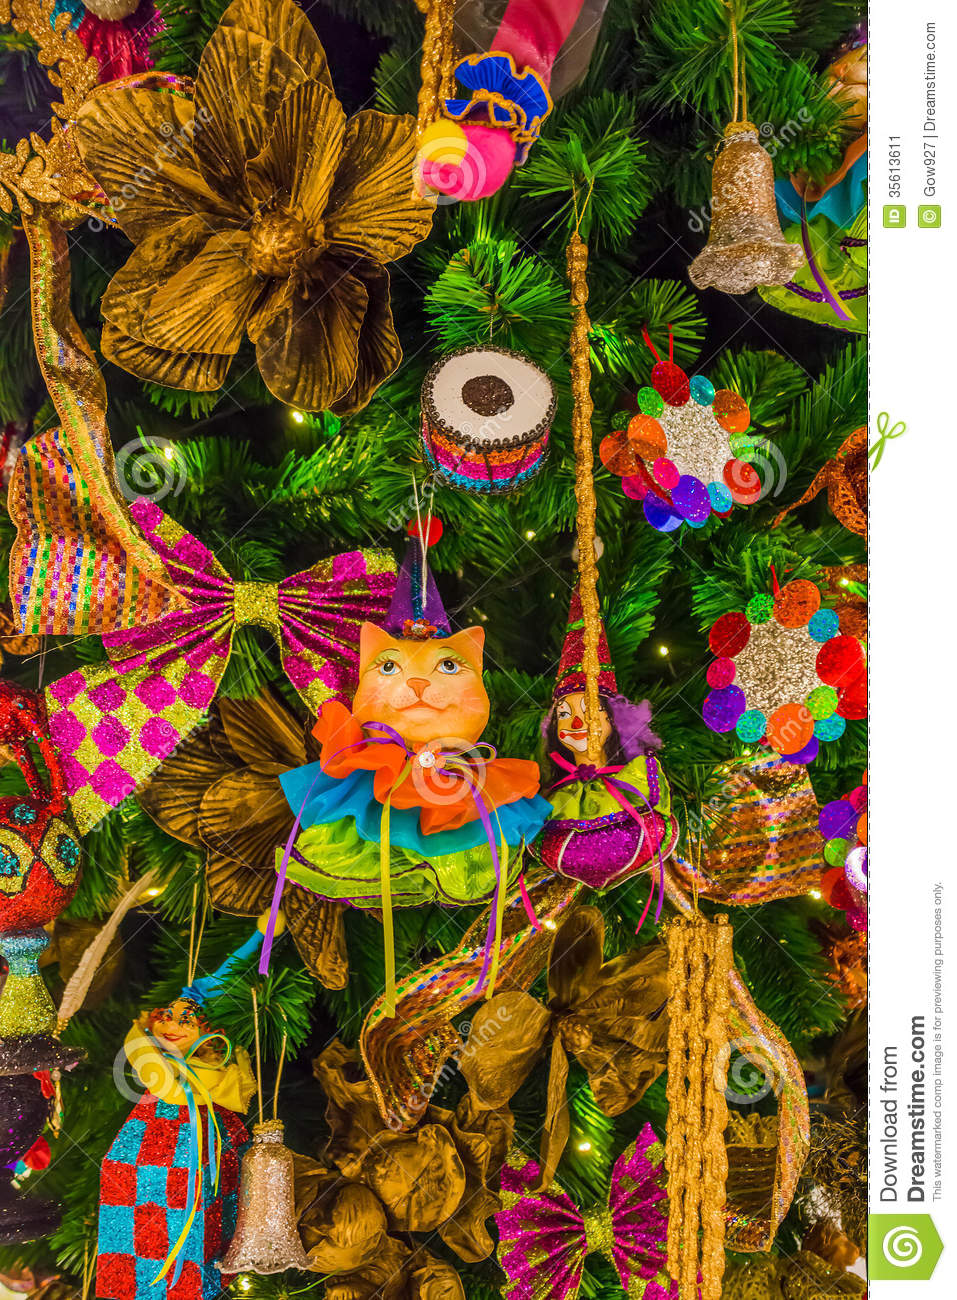 Colorful christmas tree ornaments and decorations stock for Colorful christmas tree decorations